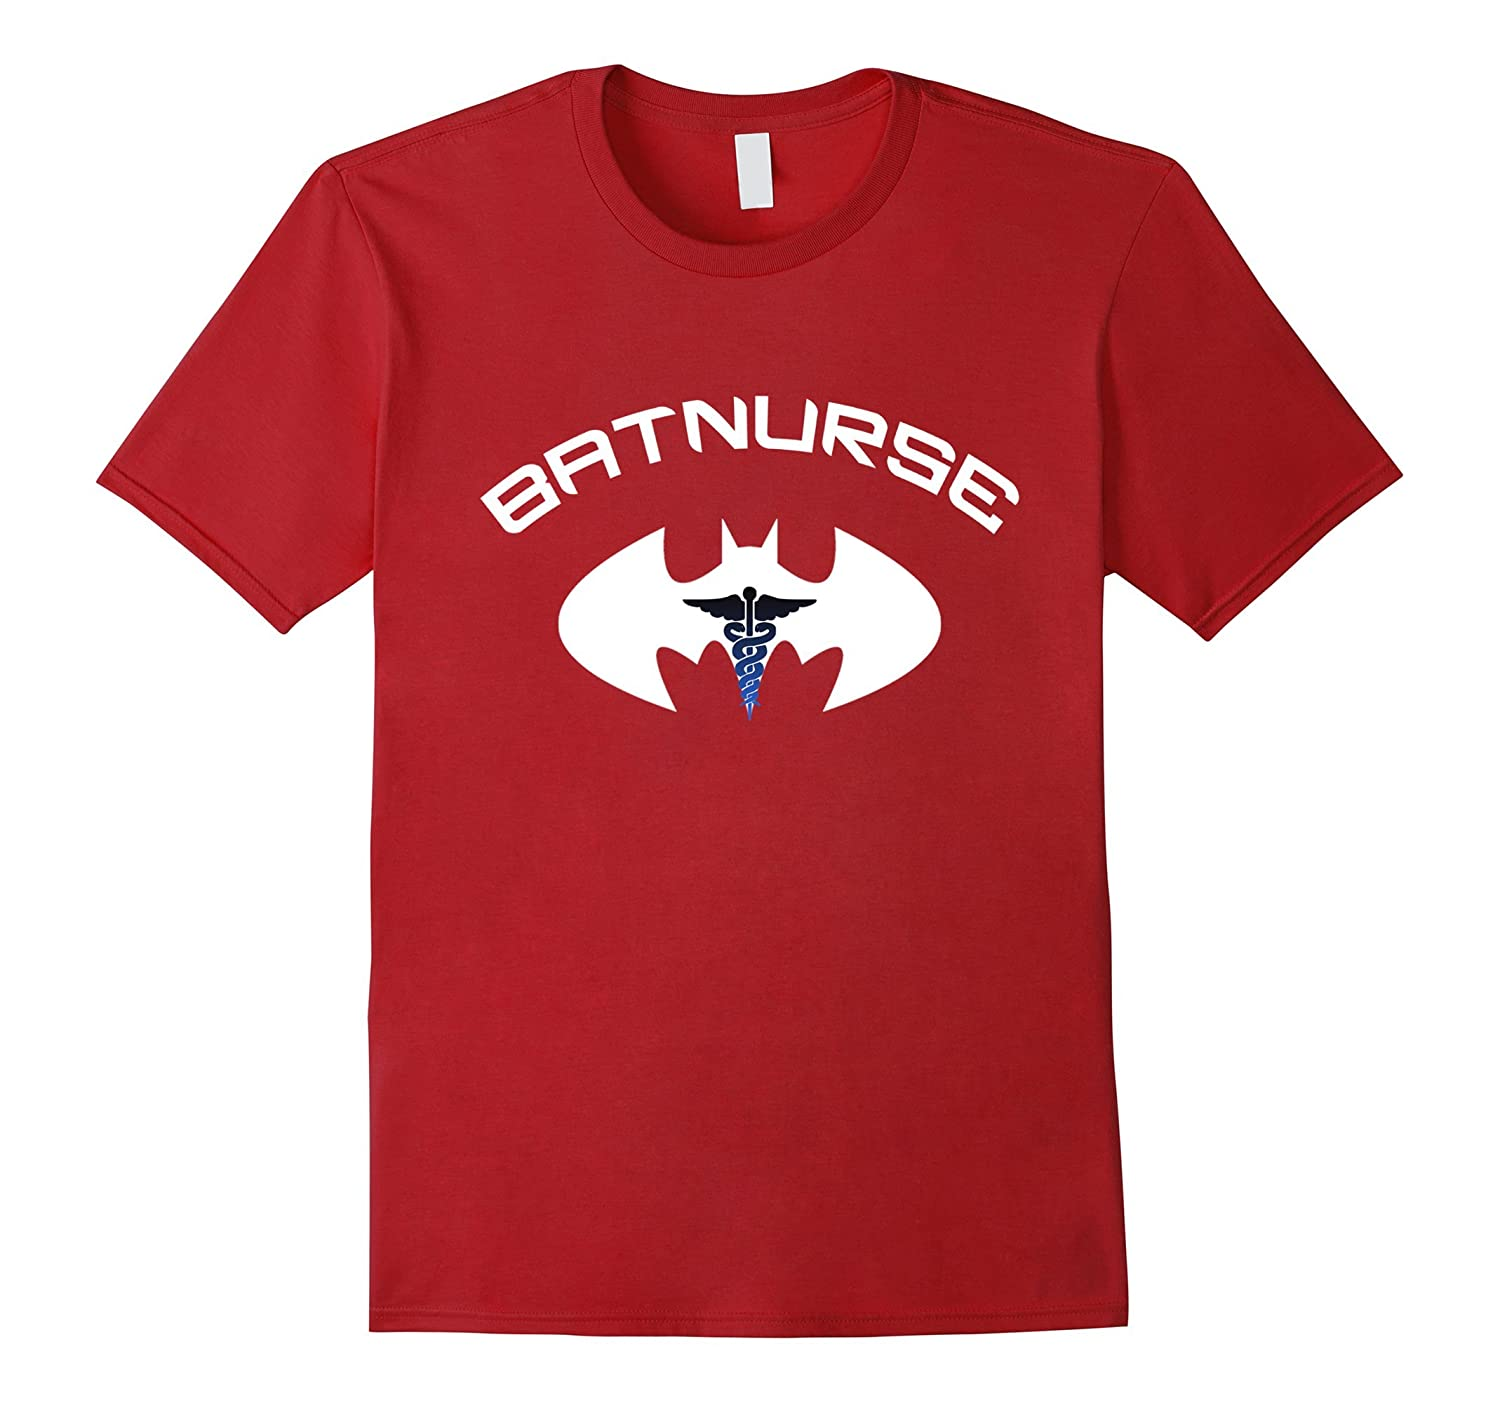 Funny Batnurse T-Shirt Great Gift for Nurses-CD